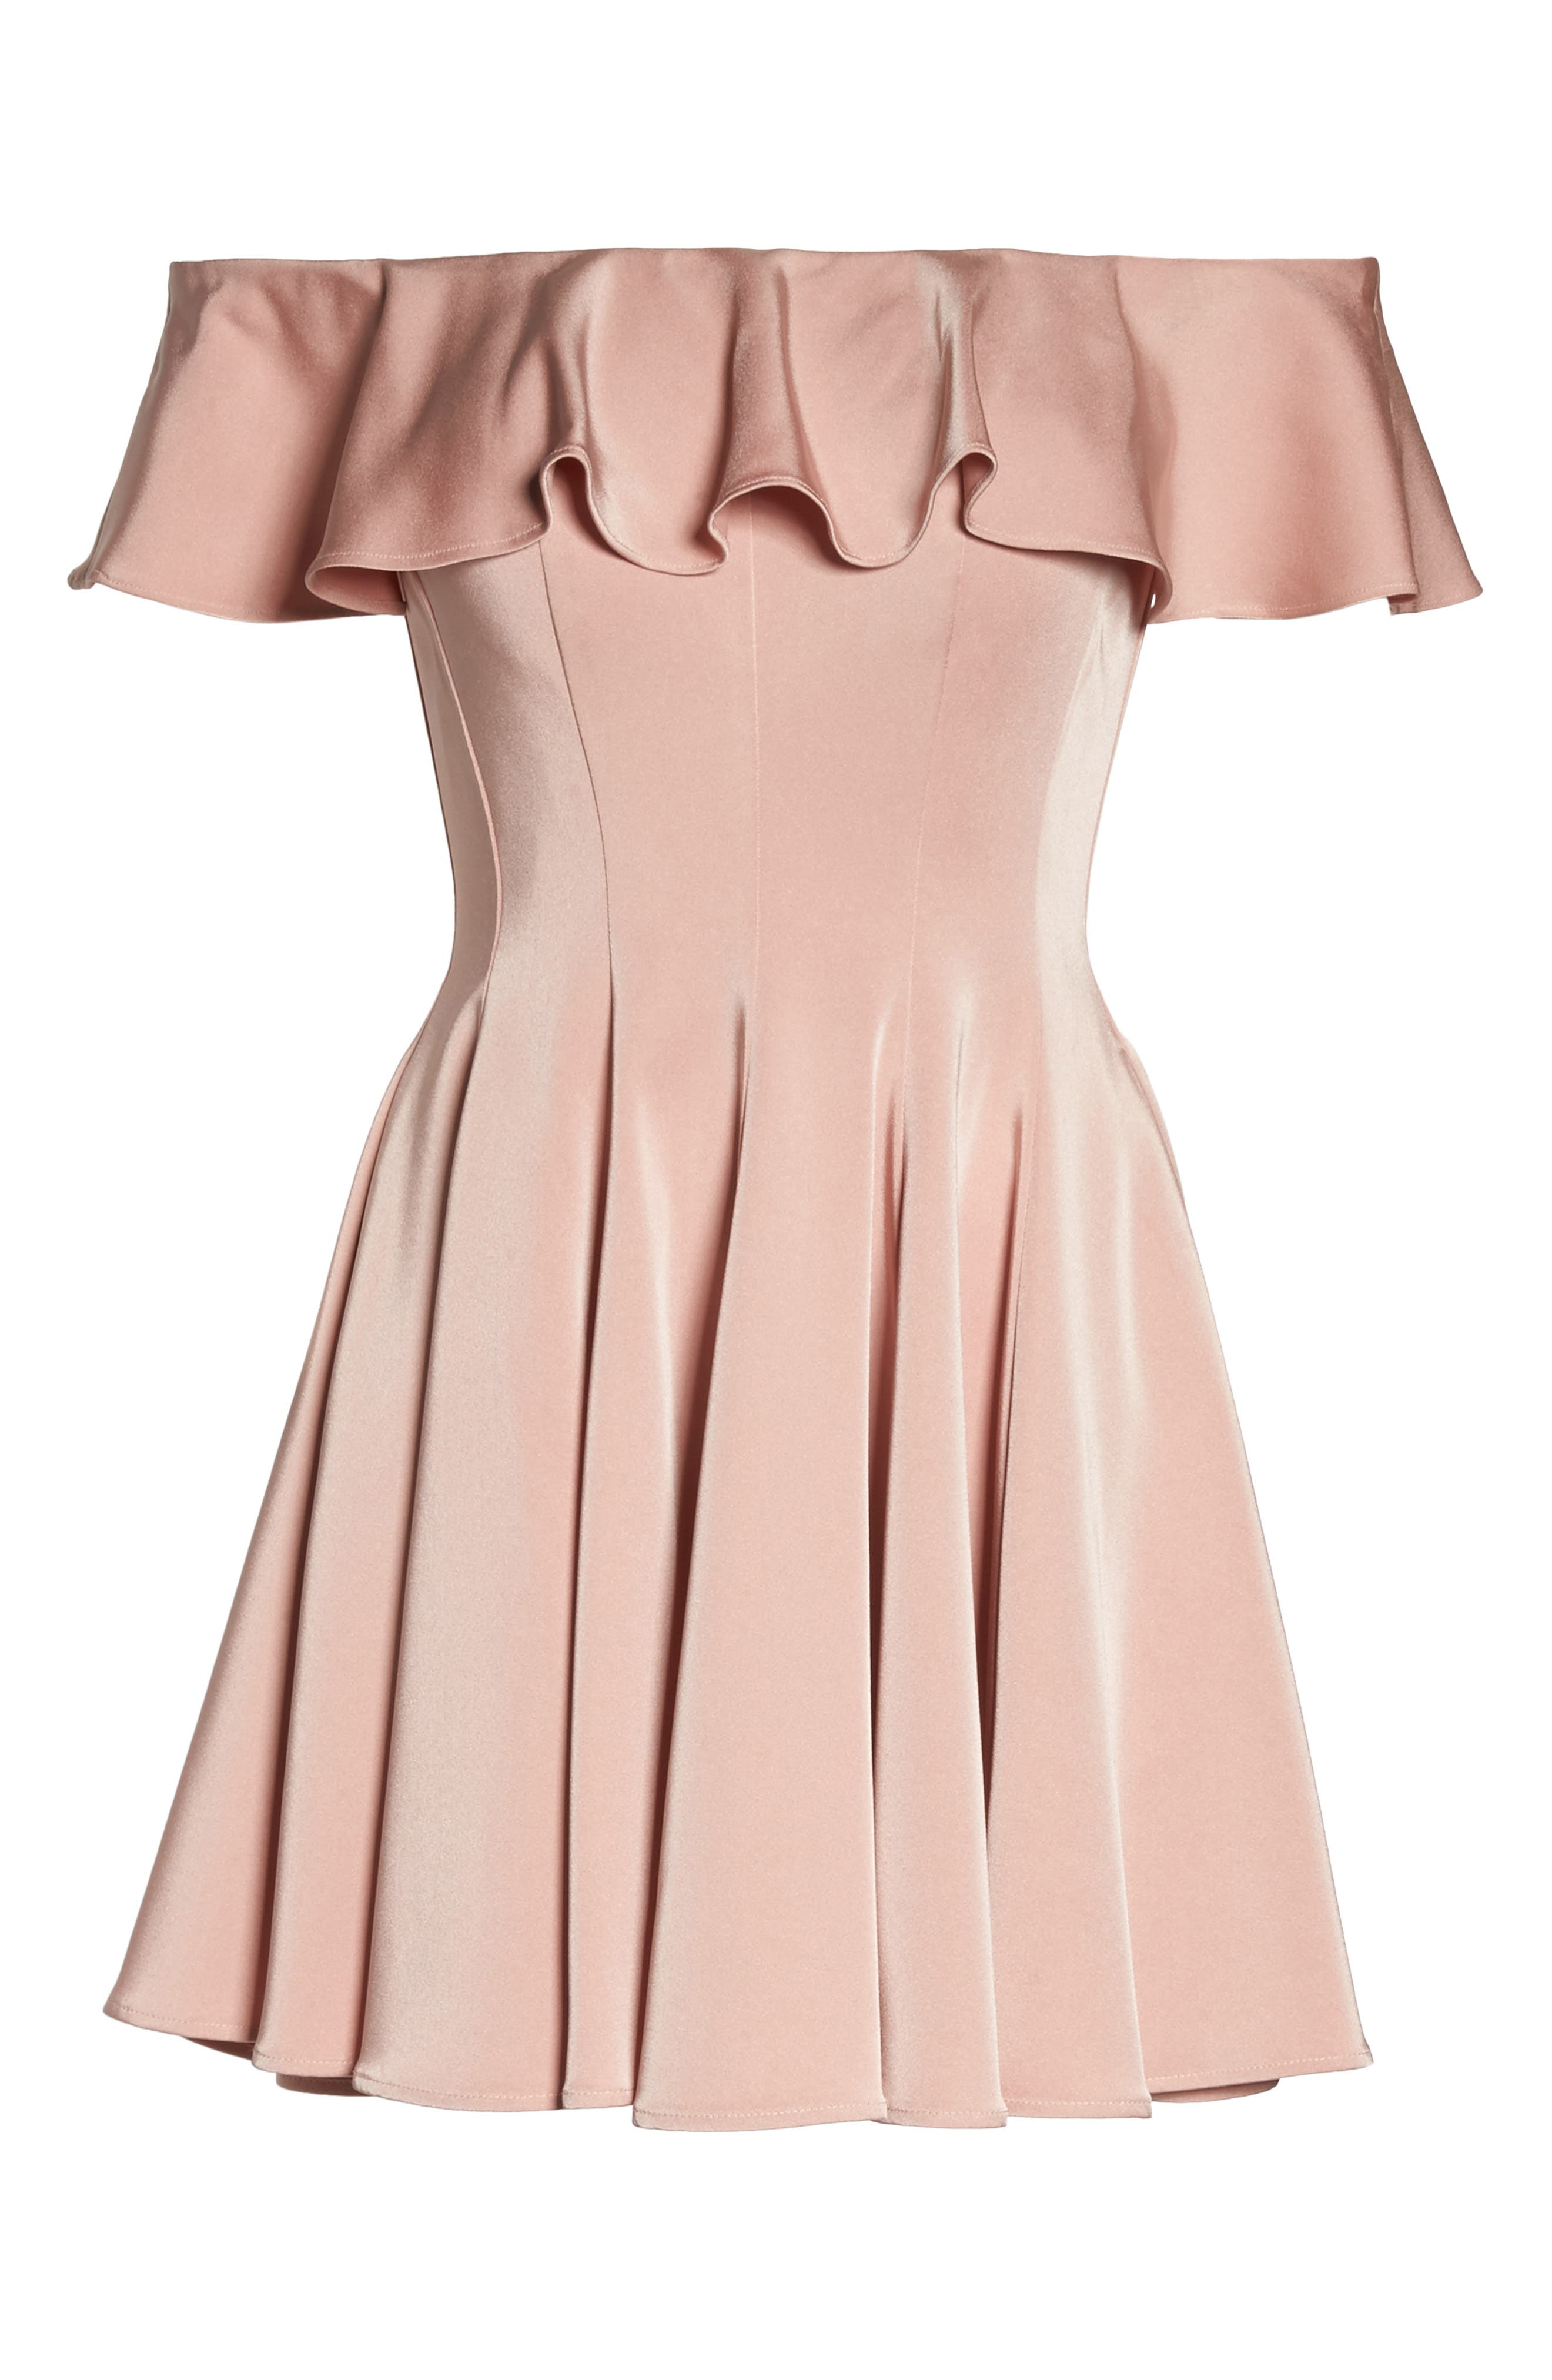 Ruffle Off the Shoulder Fit & Flare Dress,                             Alternate thumbnail 6, color,                             Blush